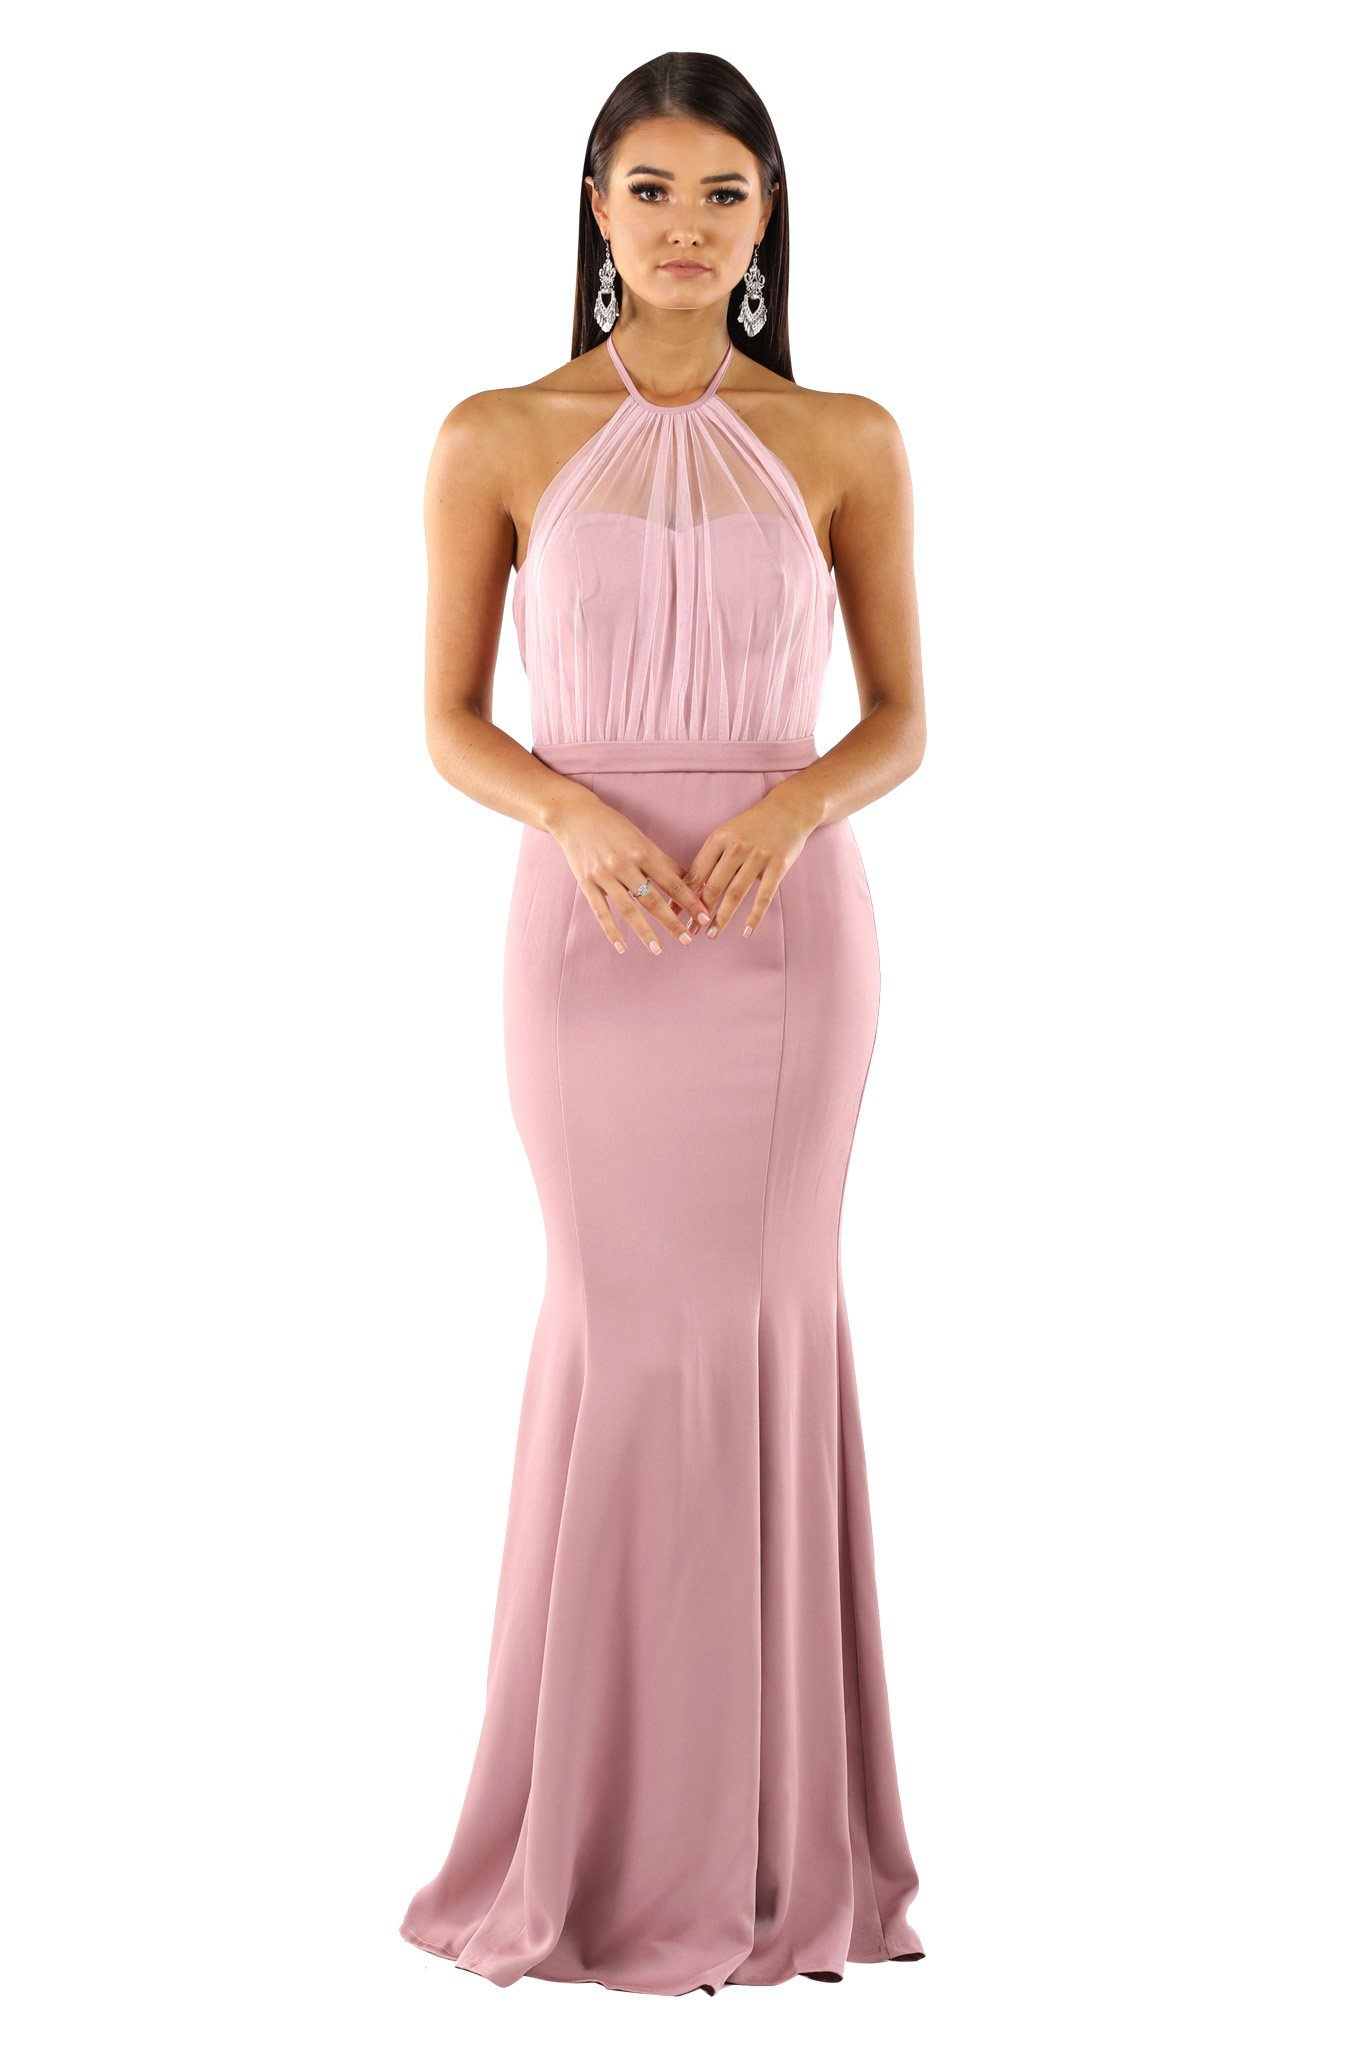 Blush dusty pink sleeveless maxi floor length dress with draped chiffon top over strapless sweetheart bodice, halter-neck strings, open back, fitted silhouette and gently flared skirt